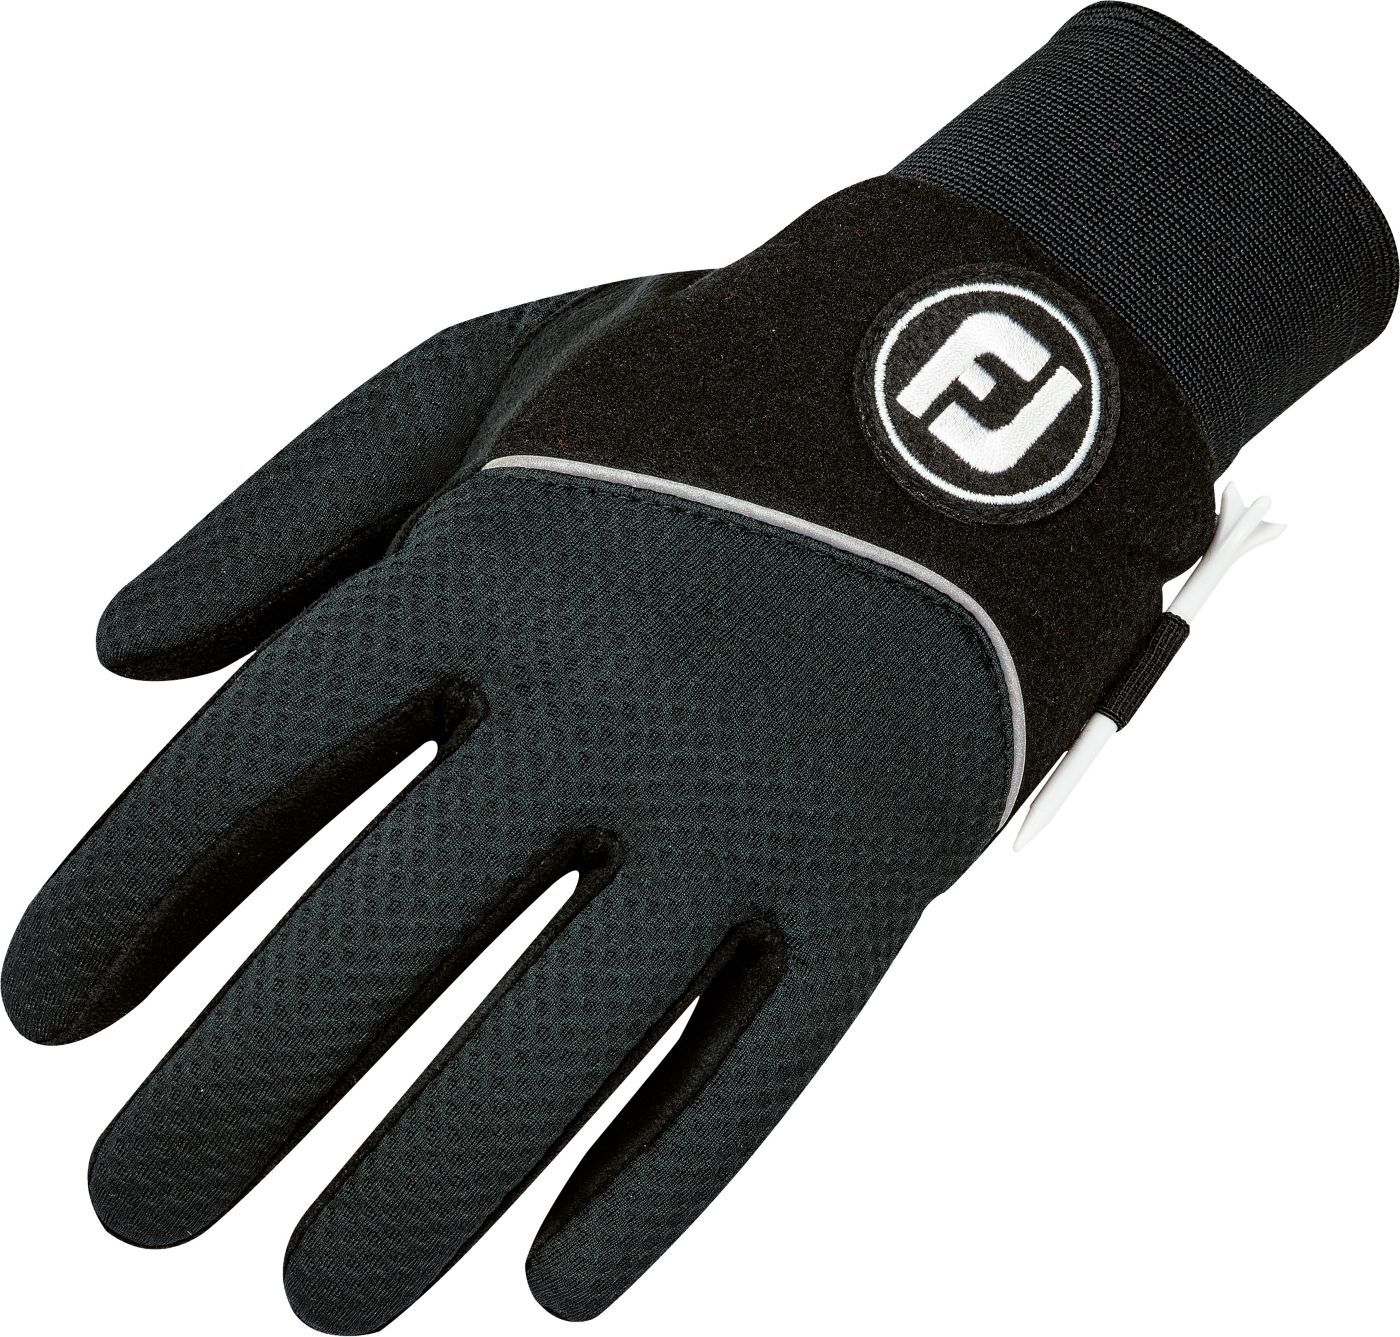 FootJoy Women's WinterSof Golf Gloves - Pair